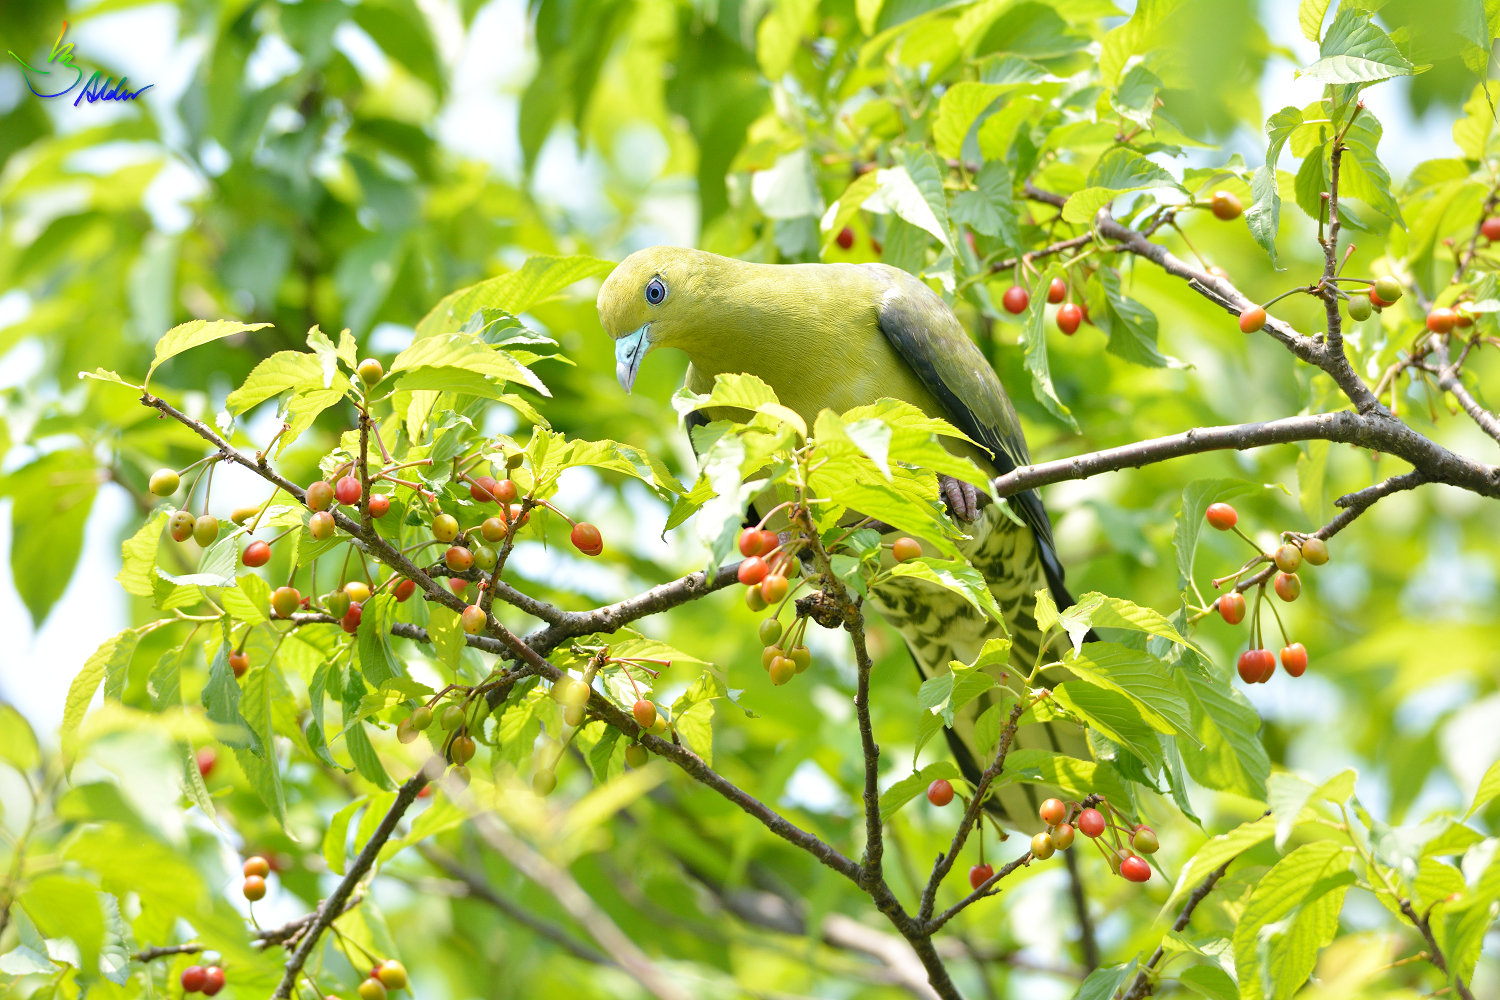 White-bellied_Green_Pigeon_6141